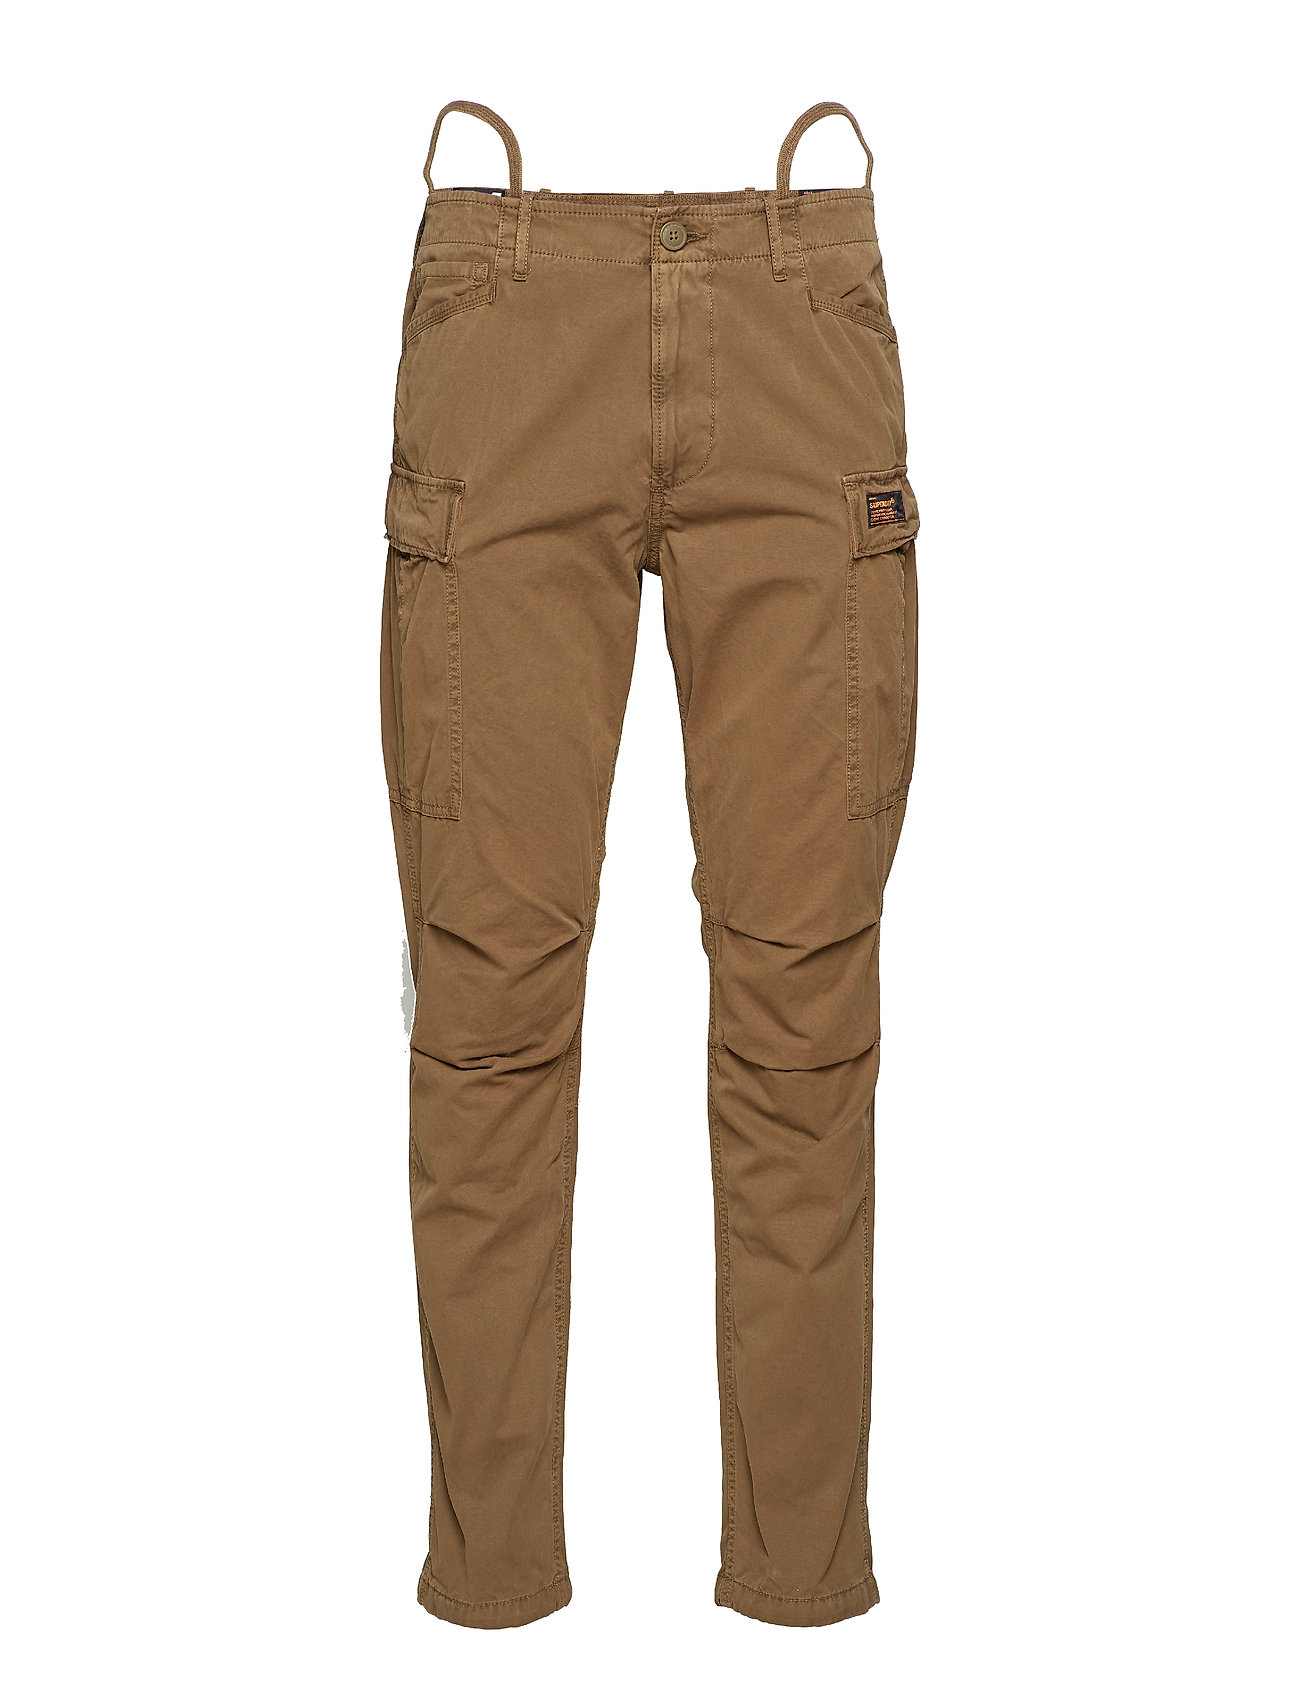 Image of Core Cargo Pant Trousers Cargo Pants Brun Superdry (3105943253)